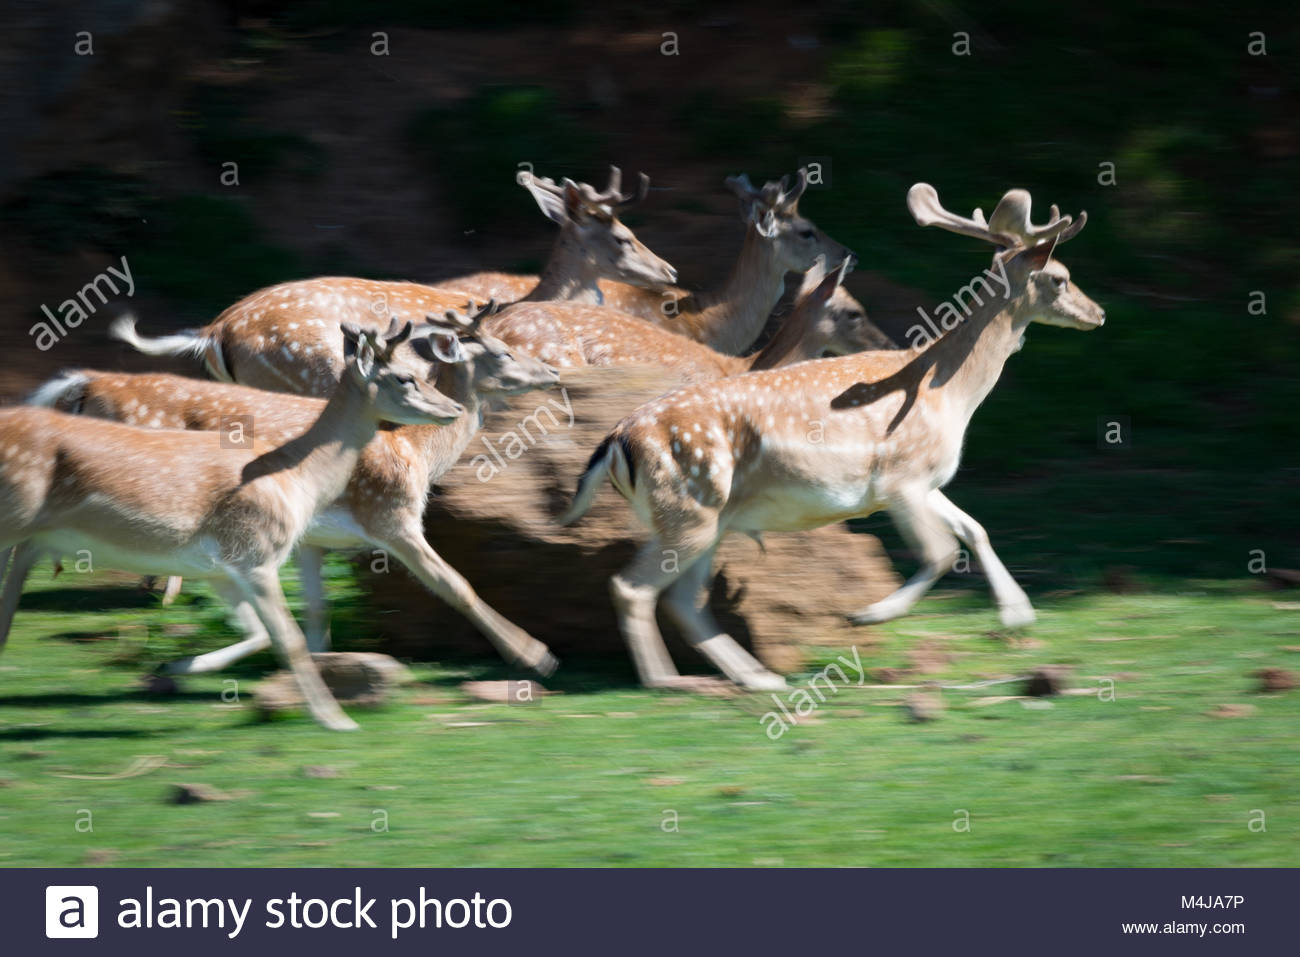 Slow pan of deer rushing past rock - Stock Image